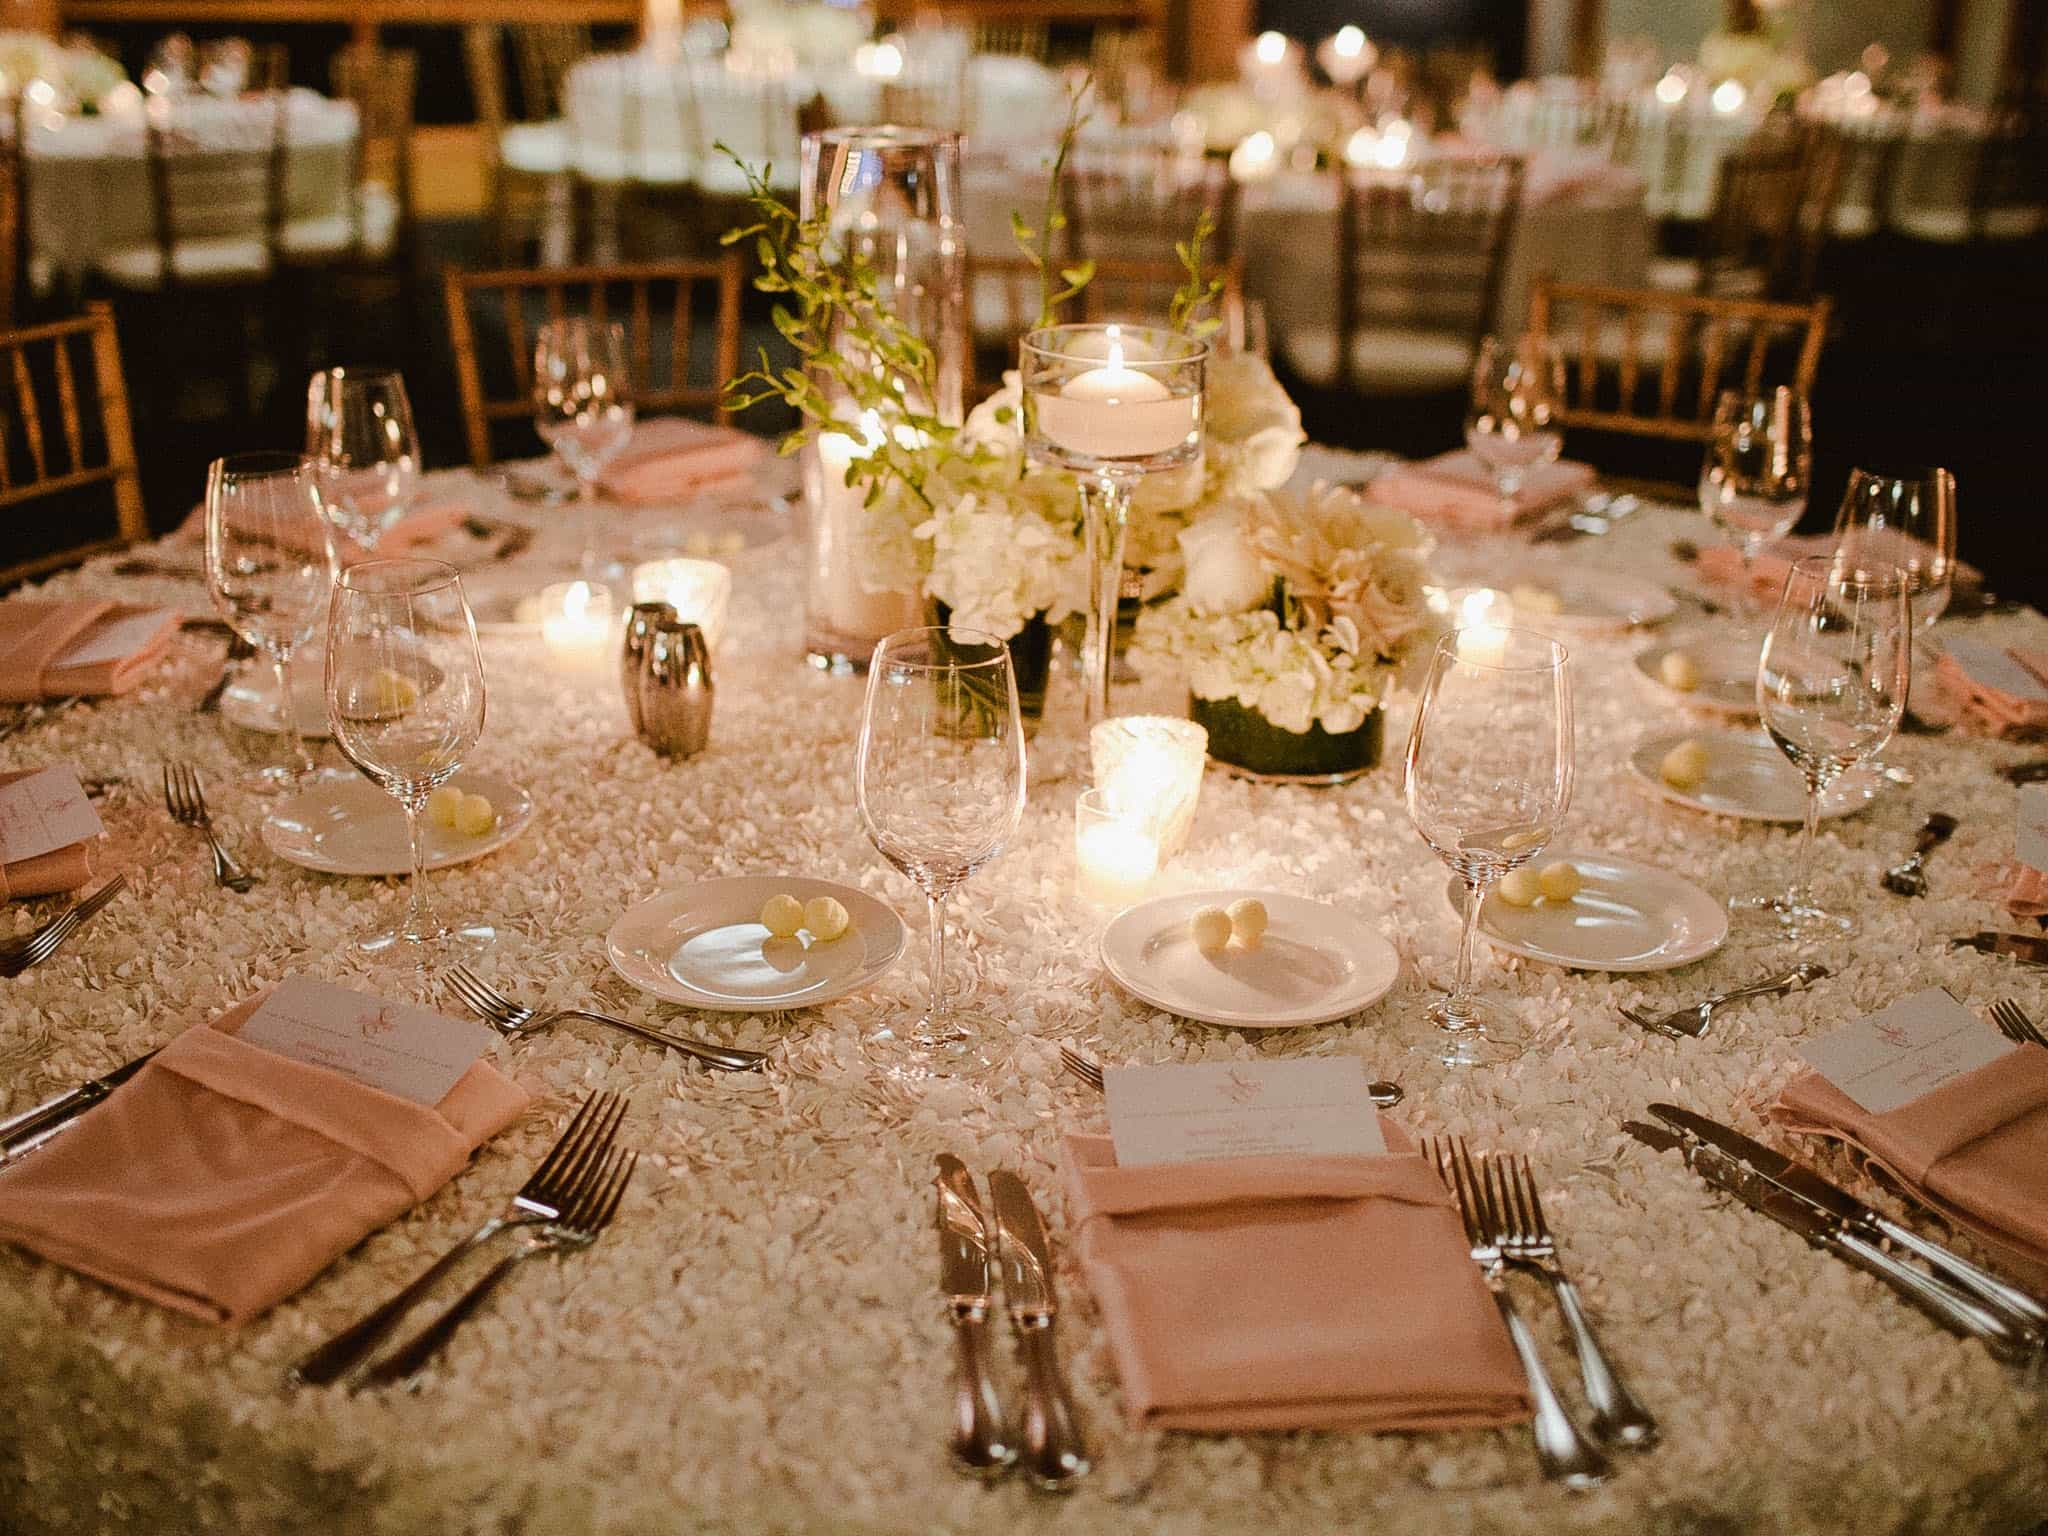 You've searched for Wedding Centerpieces! Etsy has thousands of unique options to choose from, like handmade goods, vintage finds, and one-of-a-kind gifts. Our global marketplace of sellers can help you find extraordinary items at any price range.